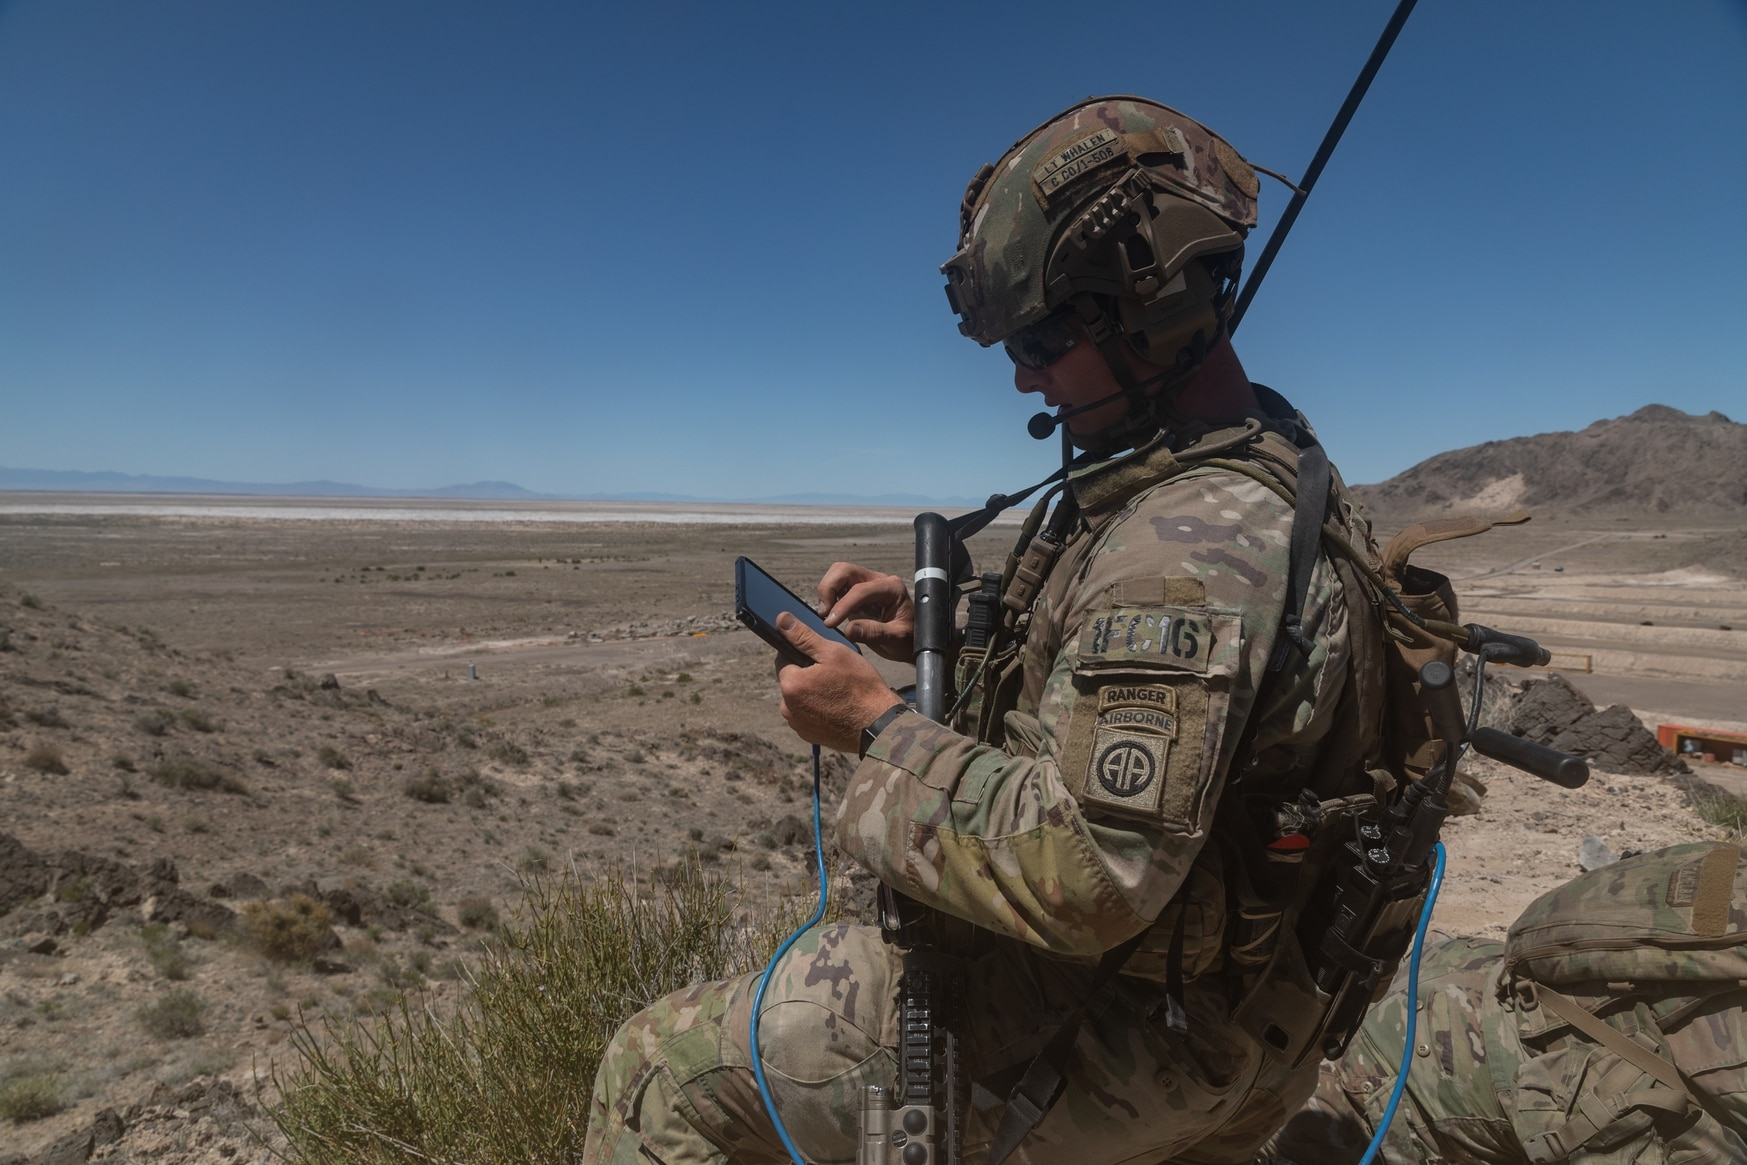 A dismounted soldier is able to take control of a nearby air-launched effects asset using a tablet to check out a blind spot as his unit attempts to seize enemy terrain. (Courtesy of the U.S. Army)